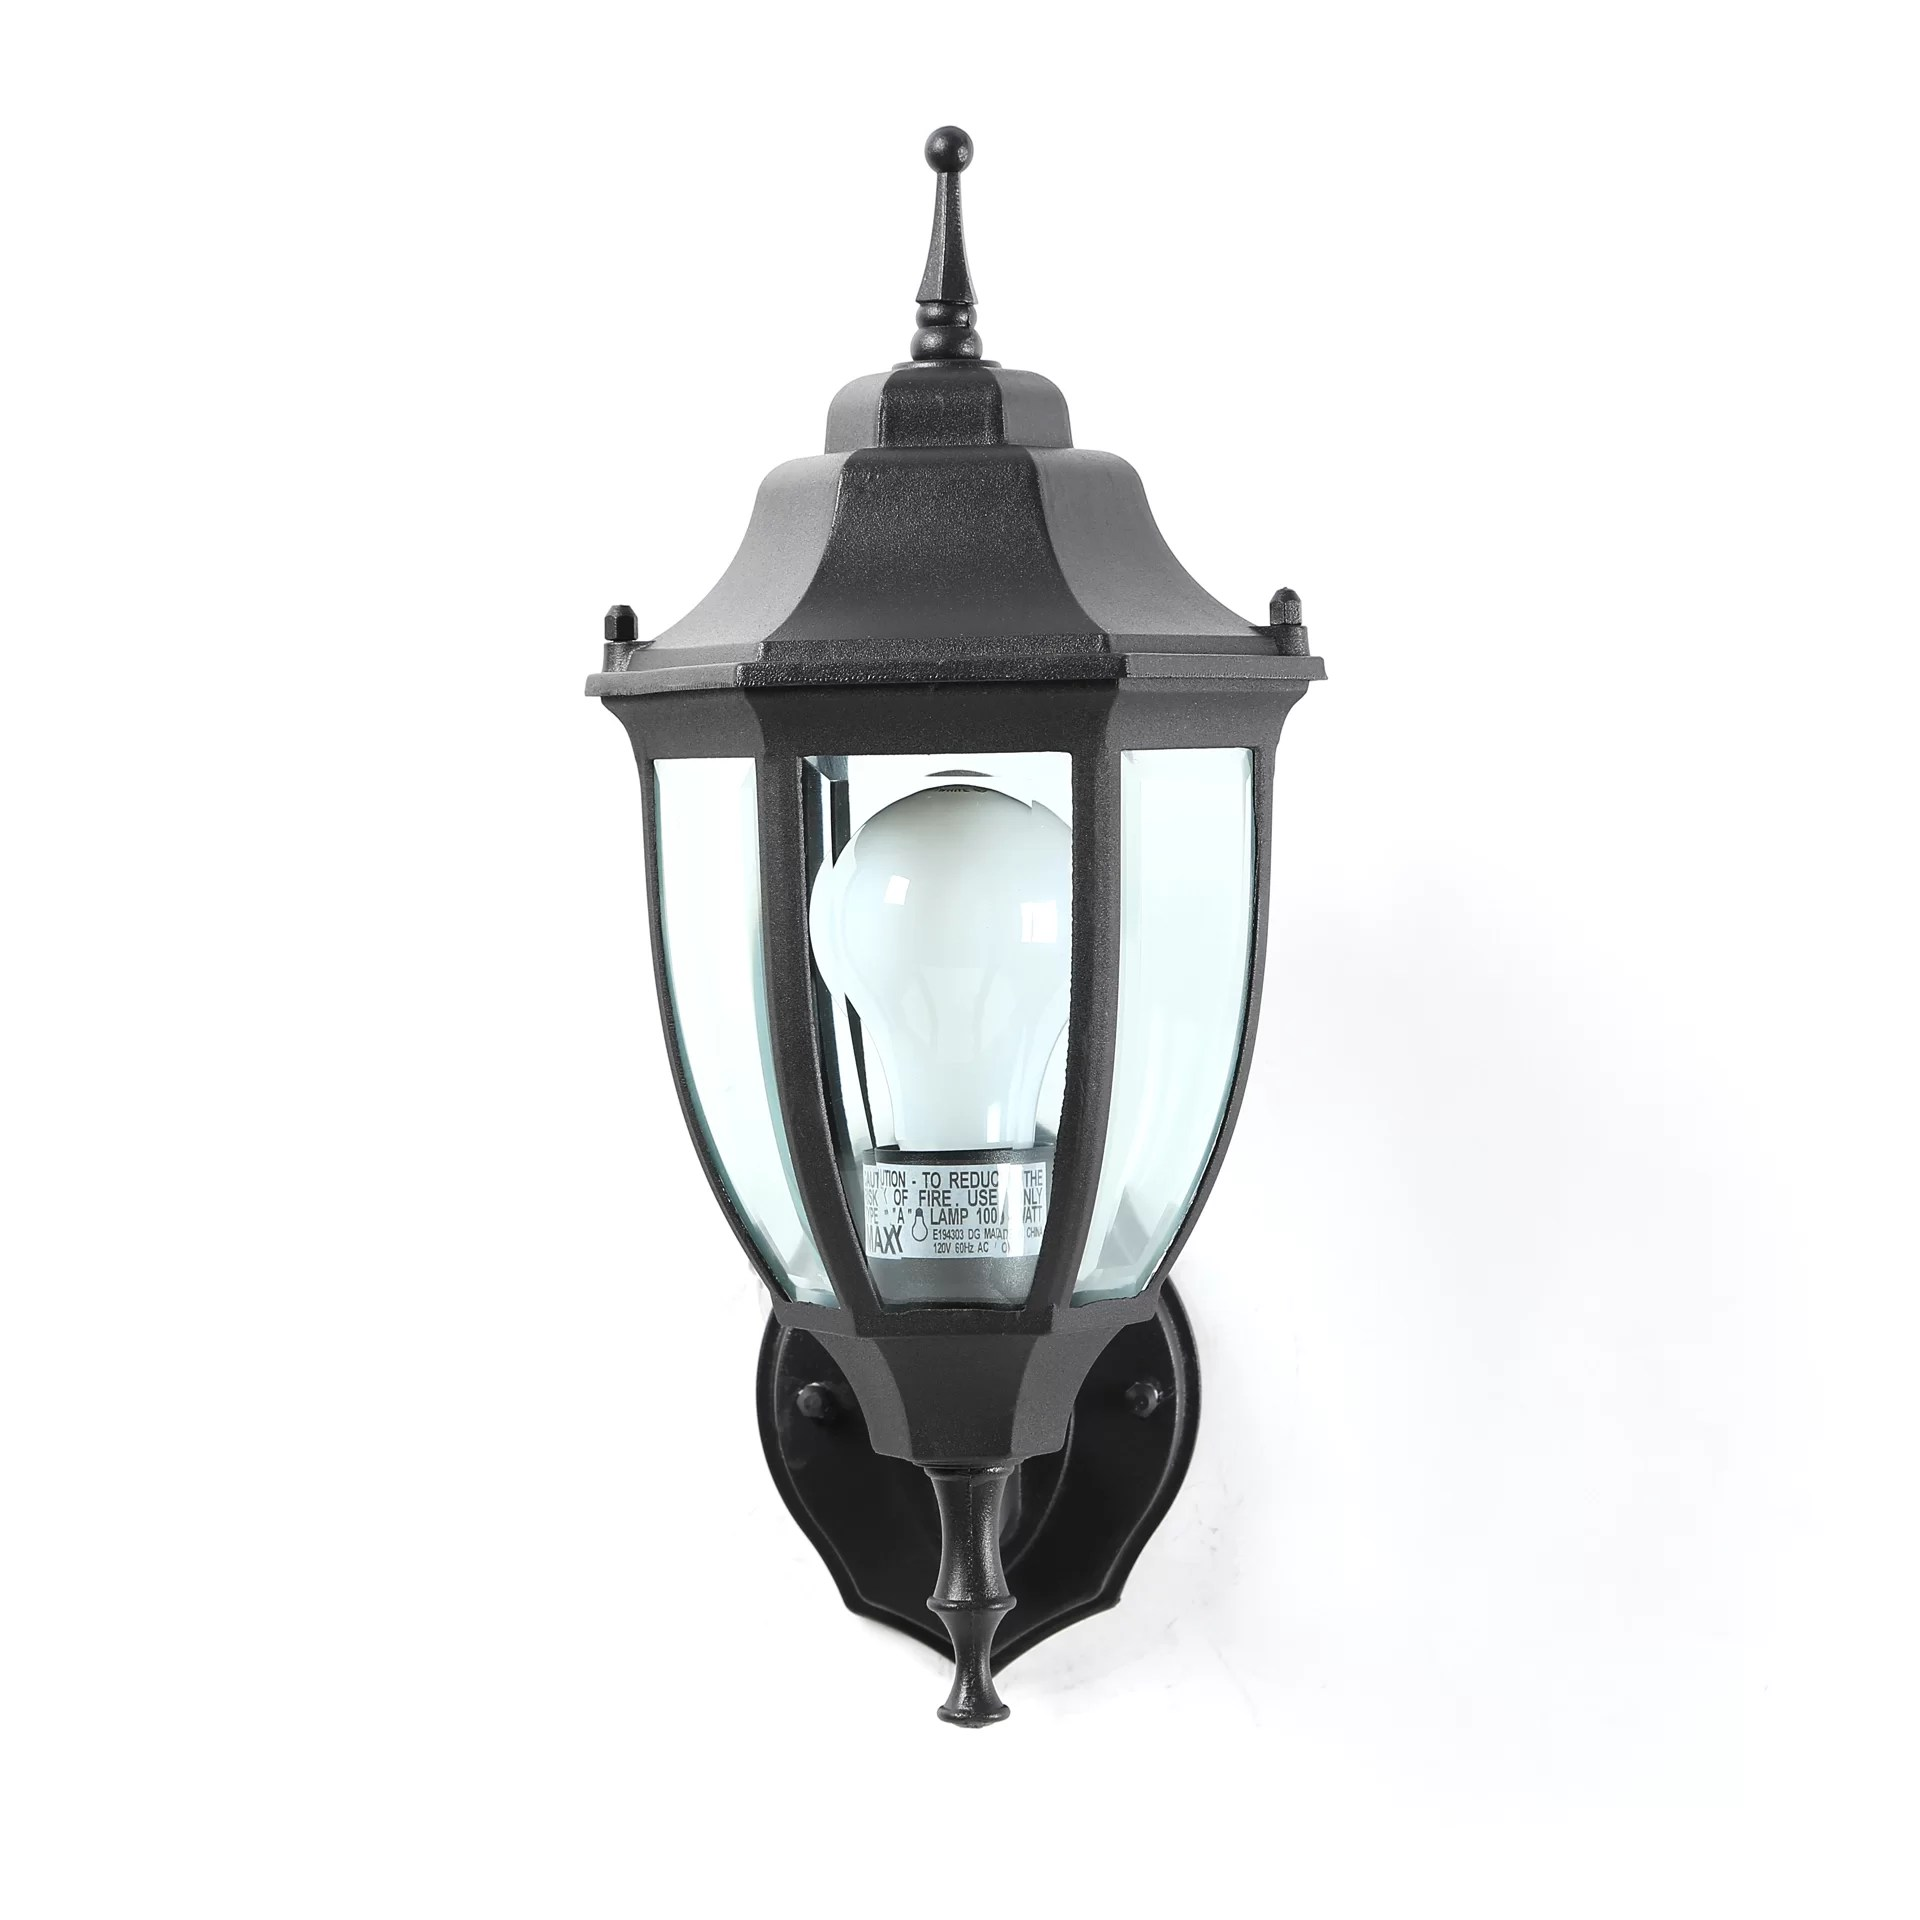 TransGlobe Lighting 1 Light Outdoor Sconce & Reviews | Wayfair on Sconce Outdoor Lighting id=18509